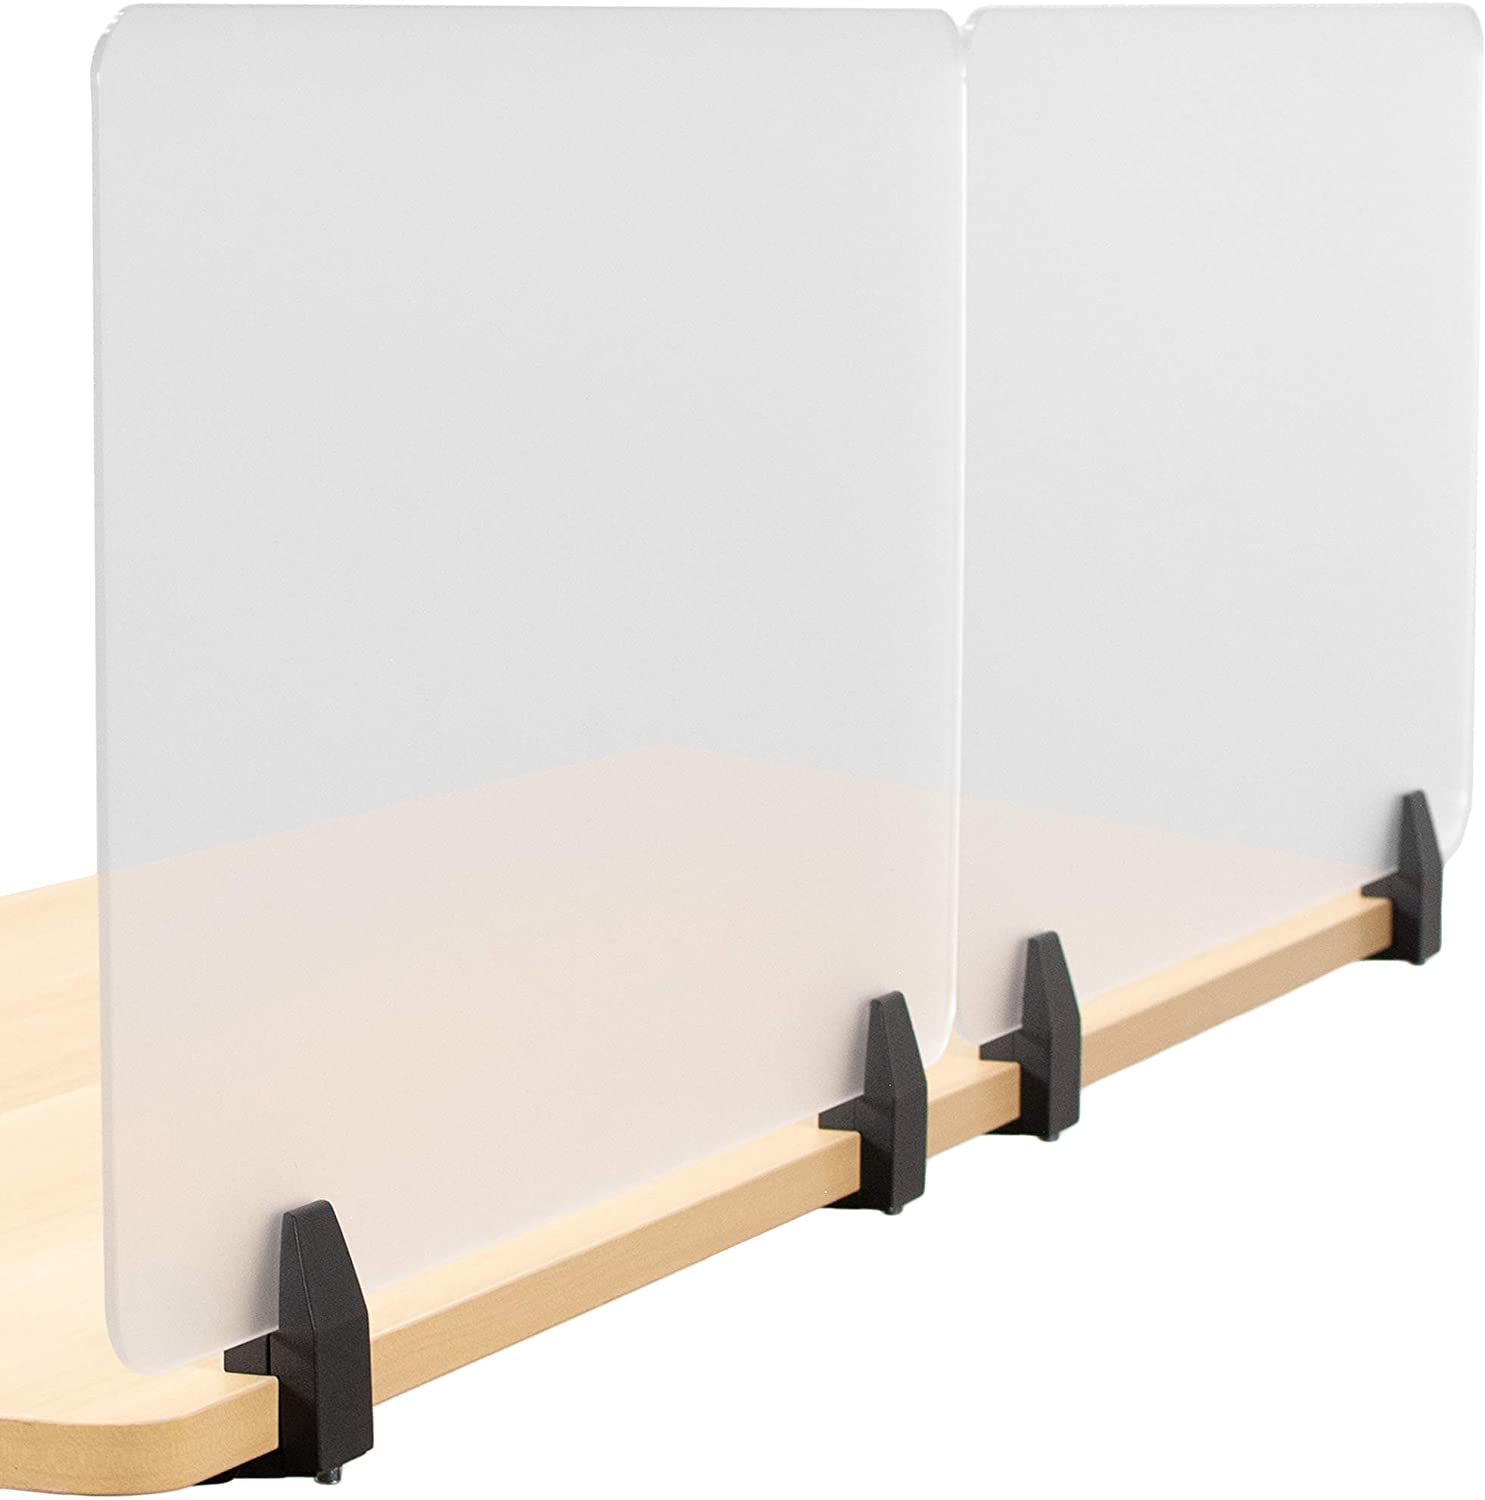 VIVO Dual Frosted Plexiglass 30 x 18 inch Clamp-on Desk Privacy Panels, Acrylic Cubicle Desk Dividers, Office Partitions (Pack of 2) (PP-2-G060C)